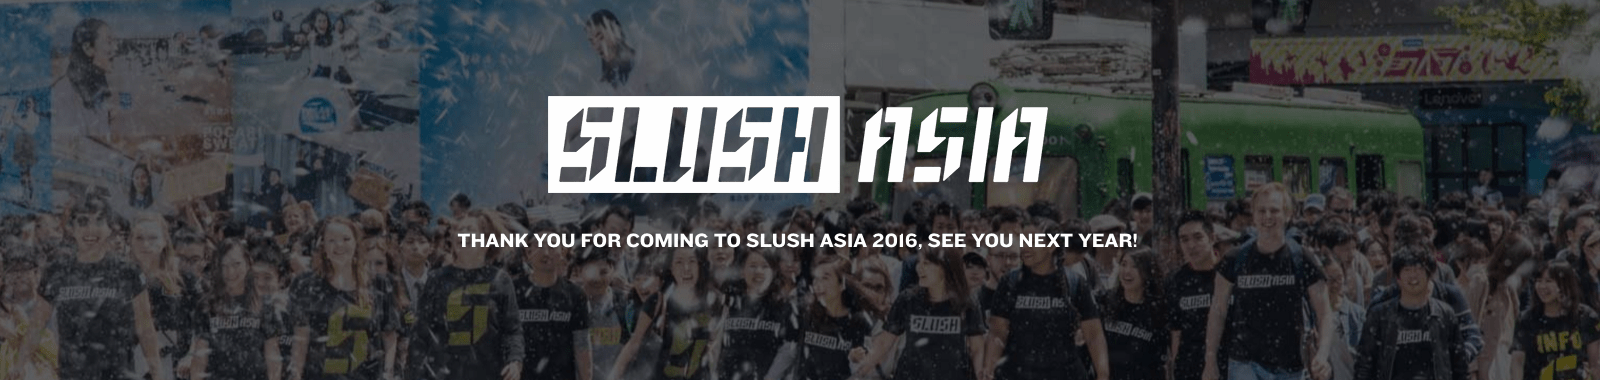 slash_asia2016_eye